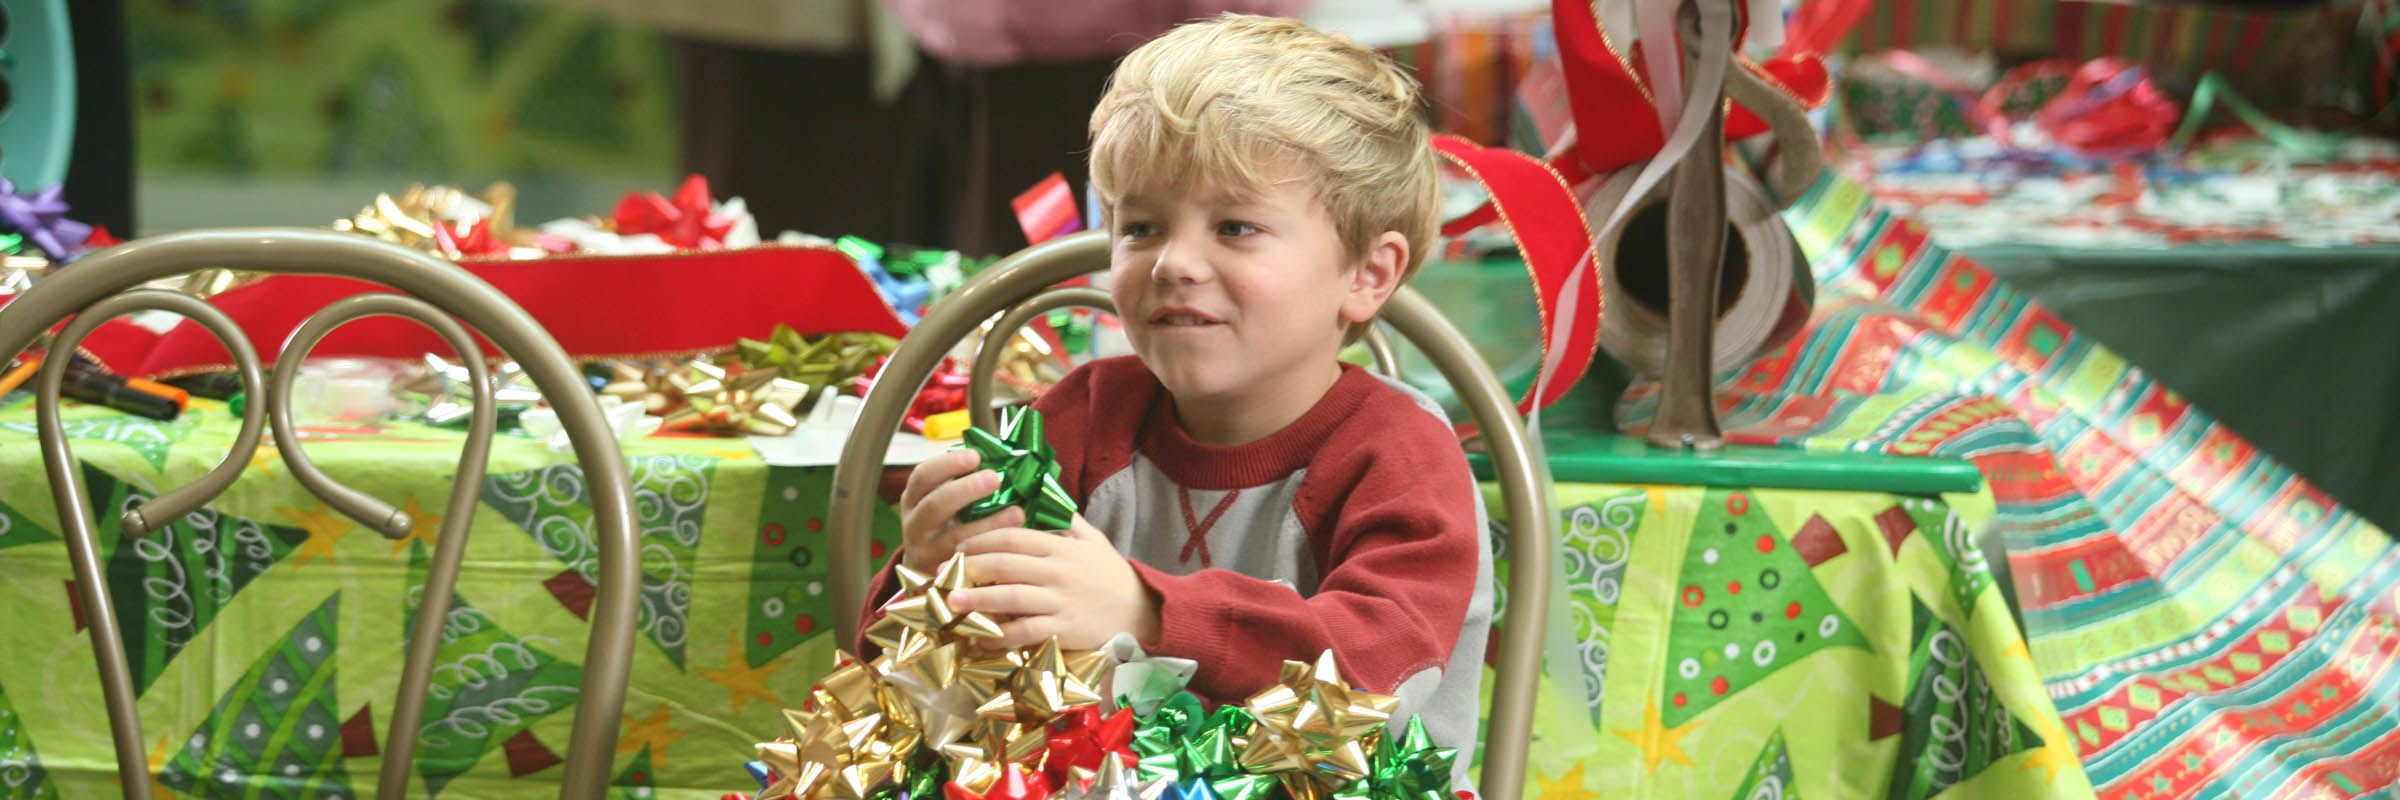 A Dennis The Menace Christmas.Dennis The Menace Christmas A Full Movie Movies Anywhere